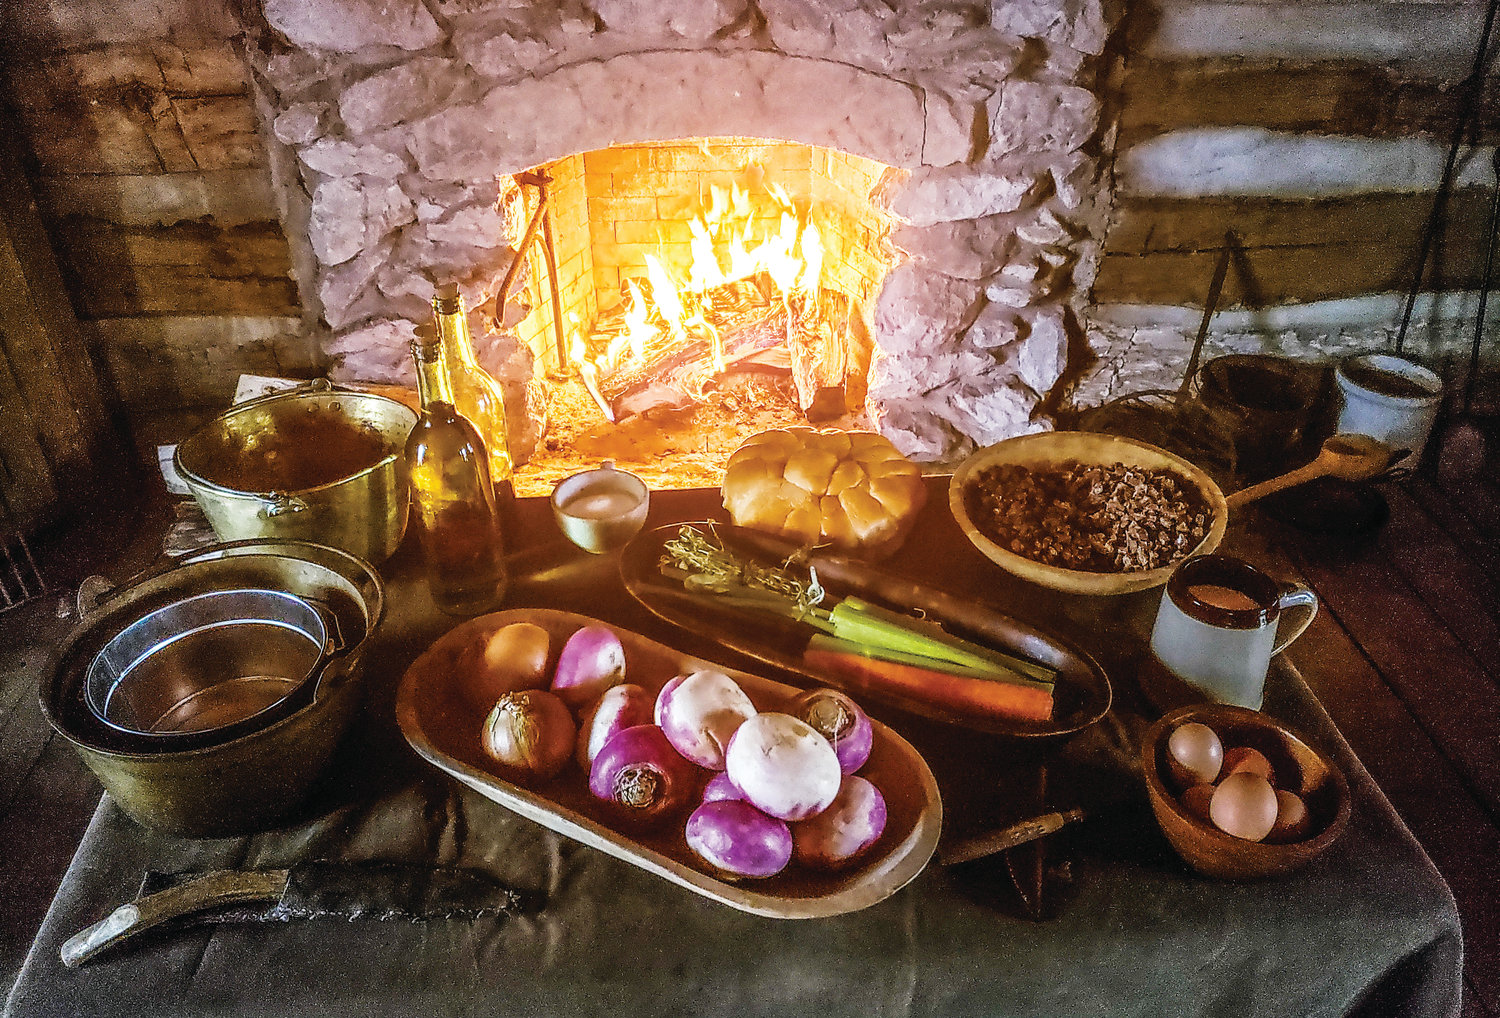 With the fireplace roaring in the Eslinger Cabin and a fire pit outside, it is time to begin the prep work for a bountiful meal. The turnips, carrots and celery pictured are common ingredients for colonial era cooking.